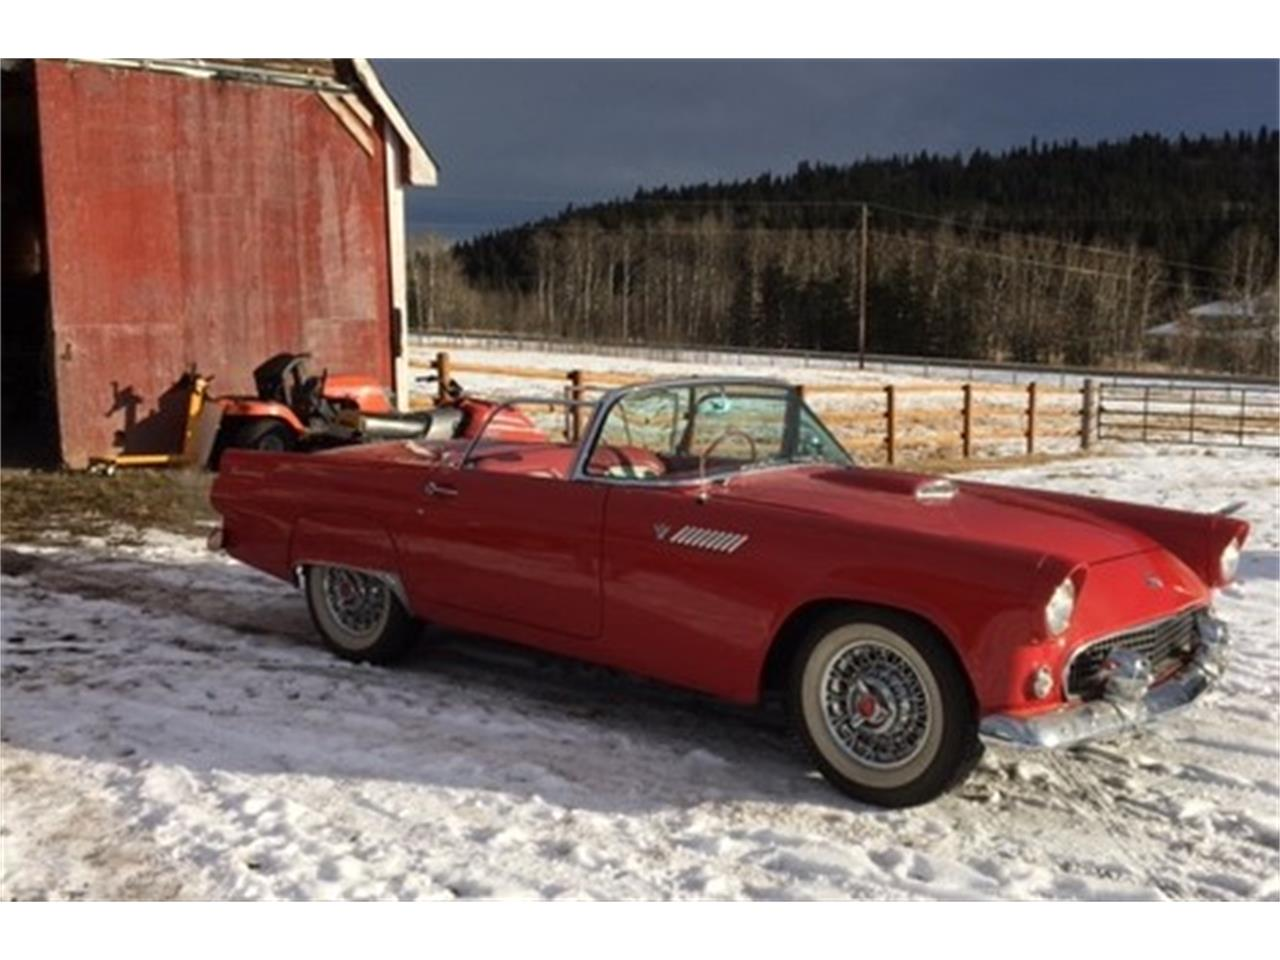 For Sale: 1955 Ford Thunderbird in Millarville, Alberta